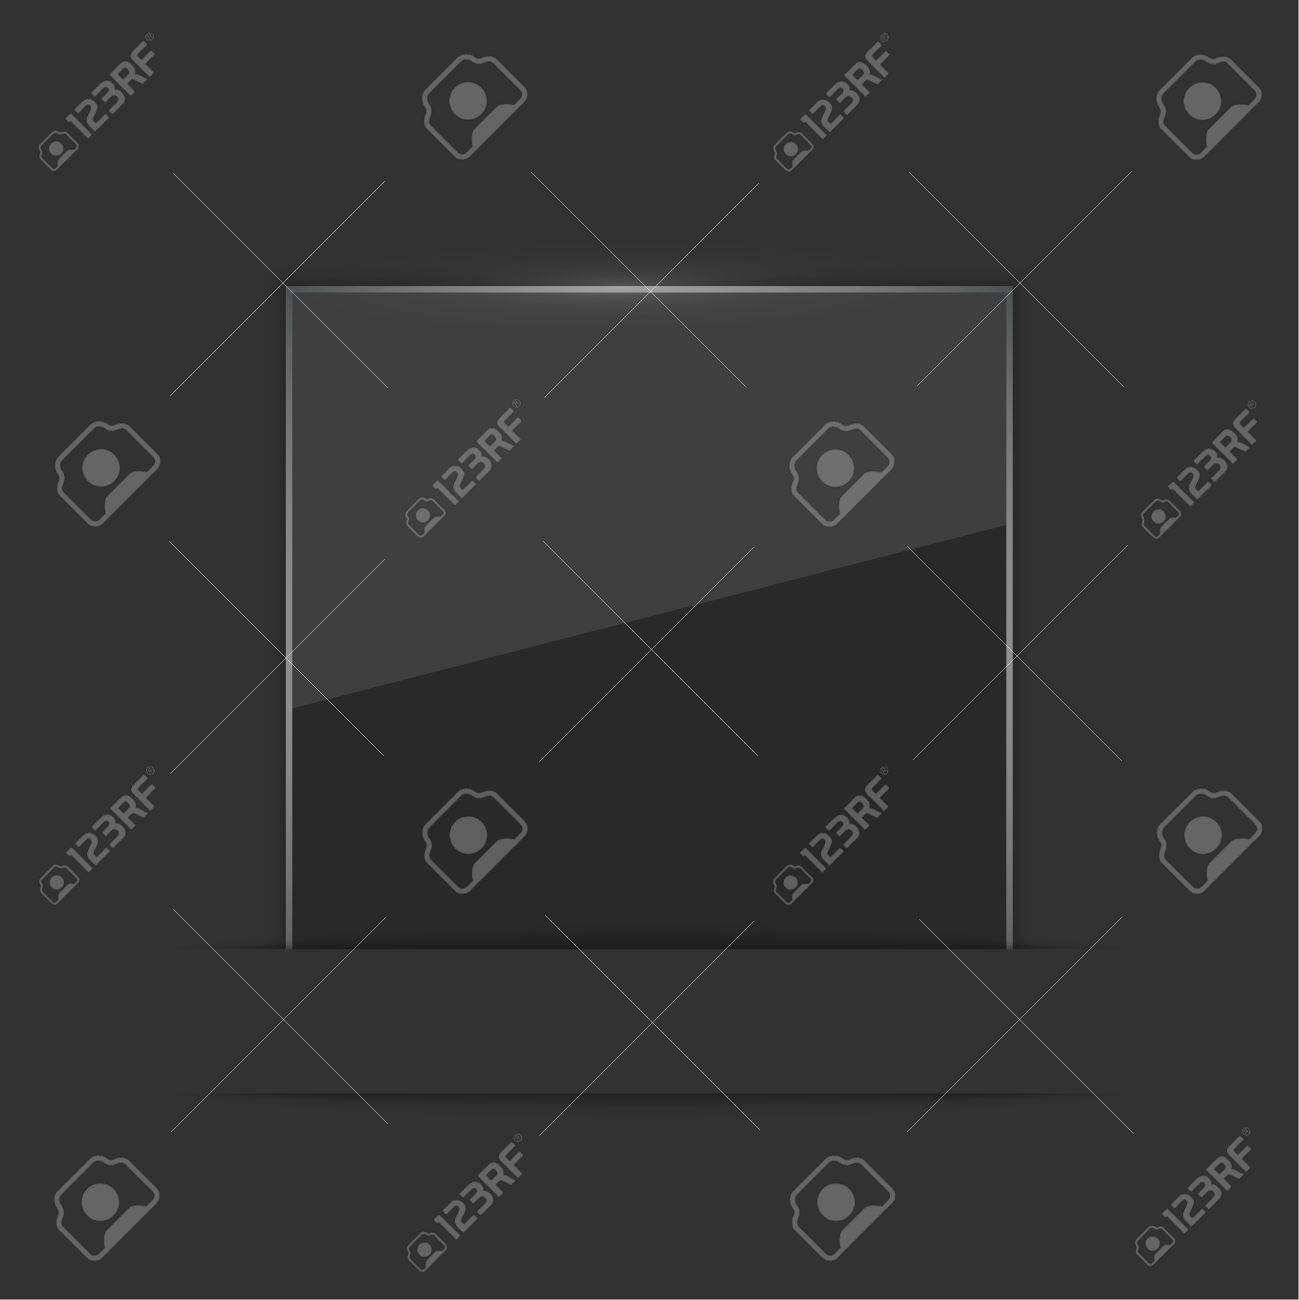 Glowing glossy glass panel with a black .  for advertising, classified ads, layouts, web, internet, website, with frame for text Stock Vector - 27571199